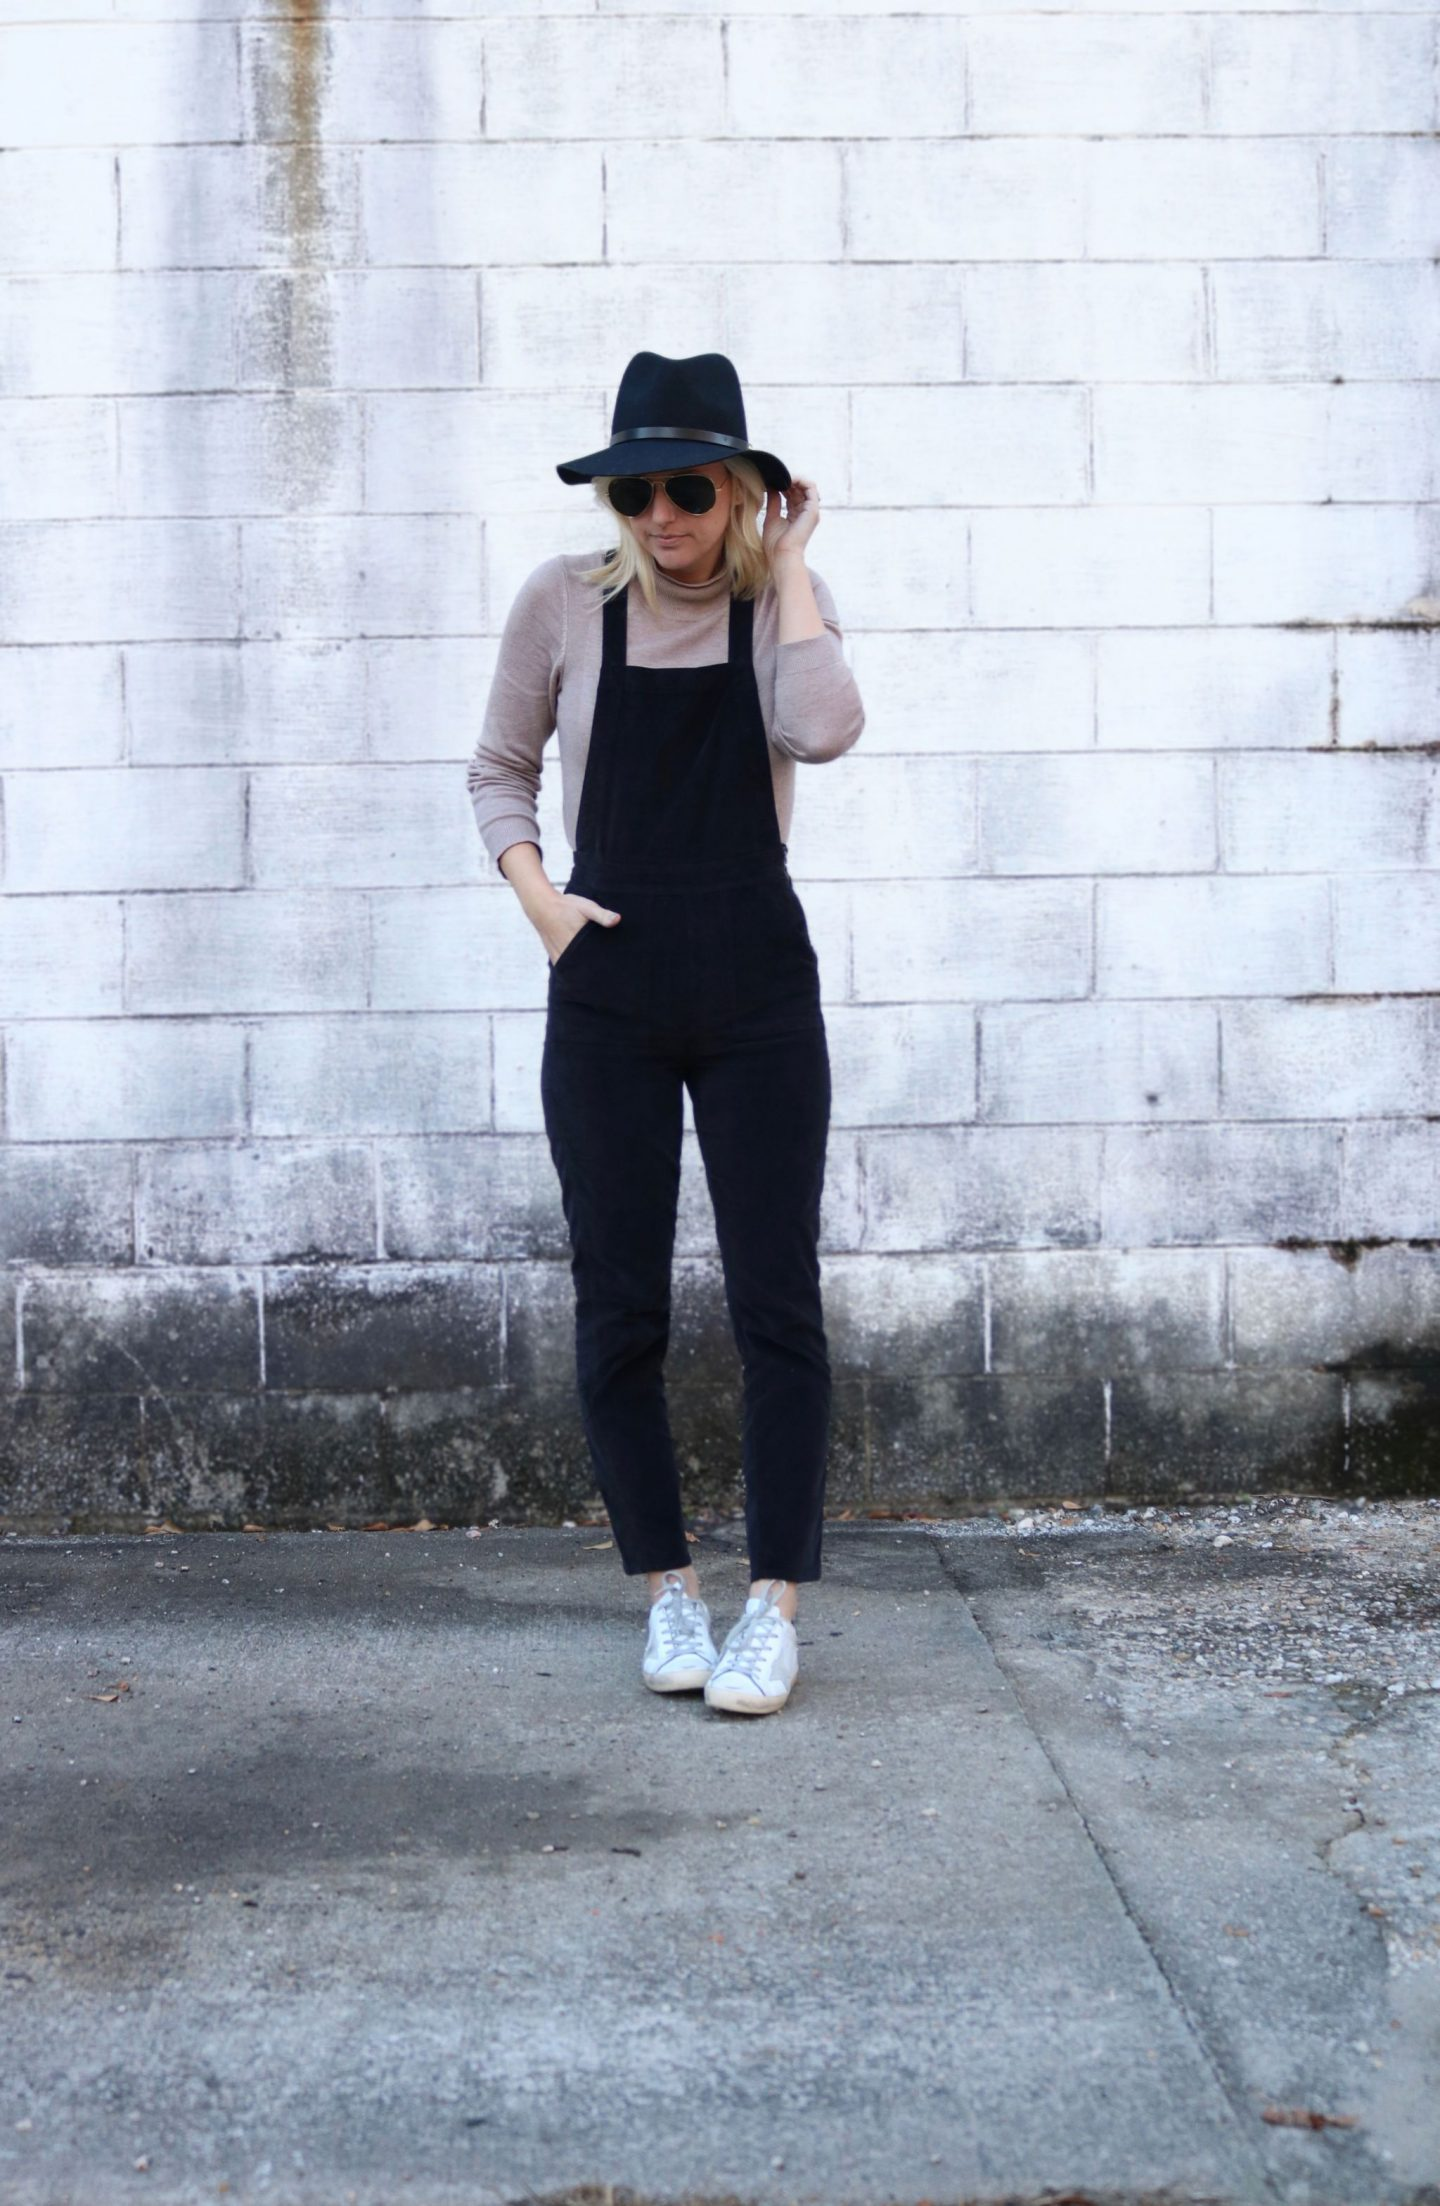 pairing sneakers with overalls, how to dress up overalls